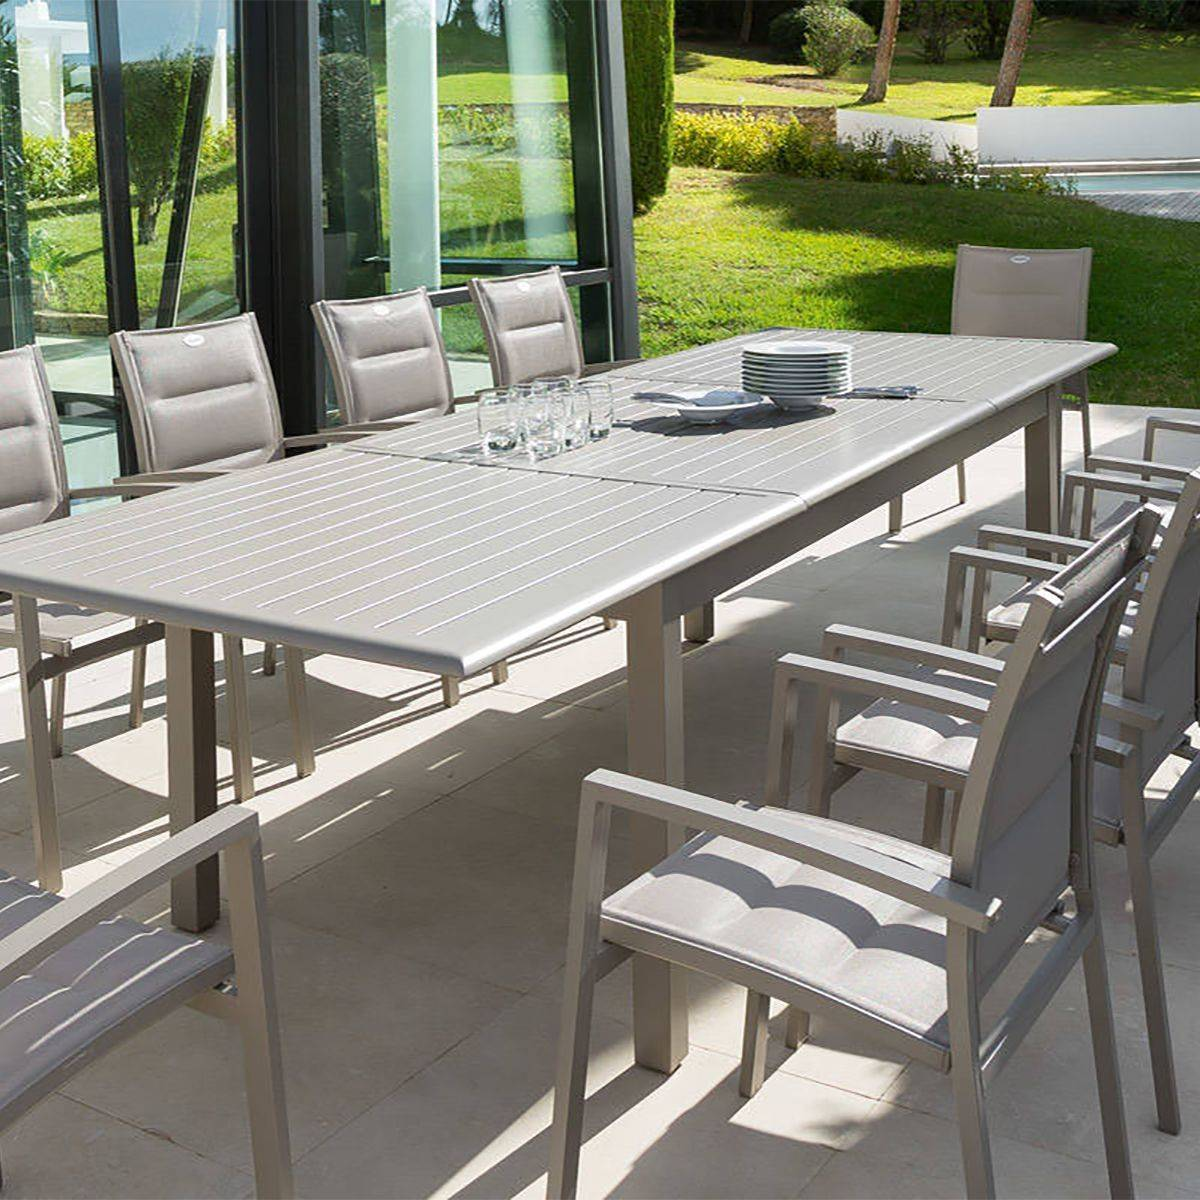 Table de jardin extensible azua taupe hesp ride 12 places - Table de jardin hesperide azua ...